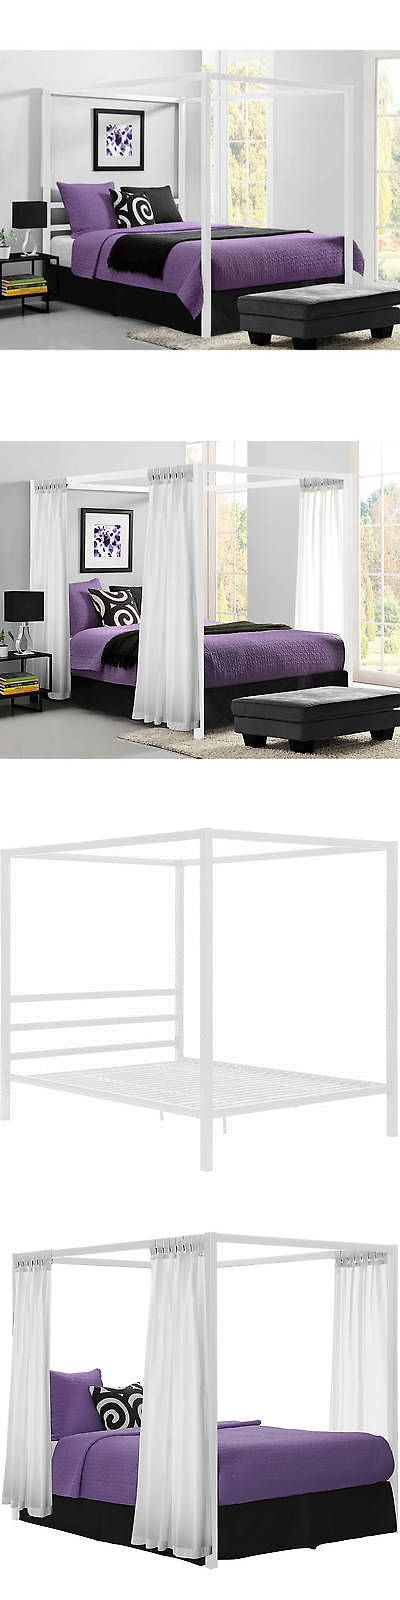 best 10+ modern canopy bed ideas on pinterest   canopy for bed